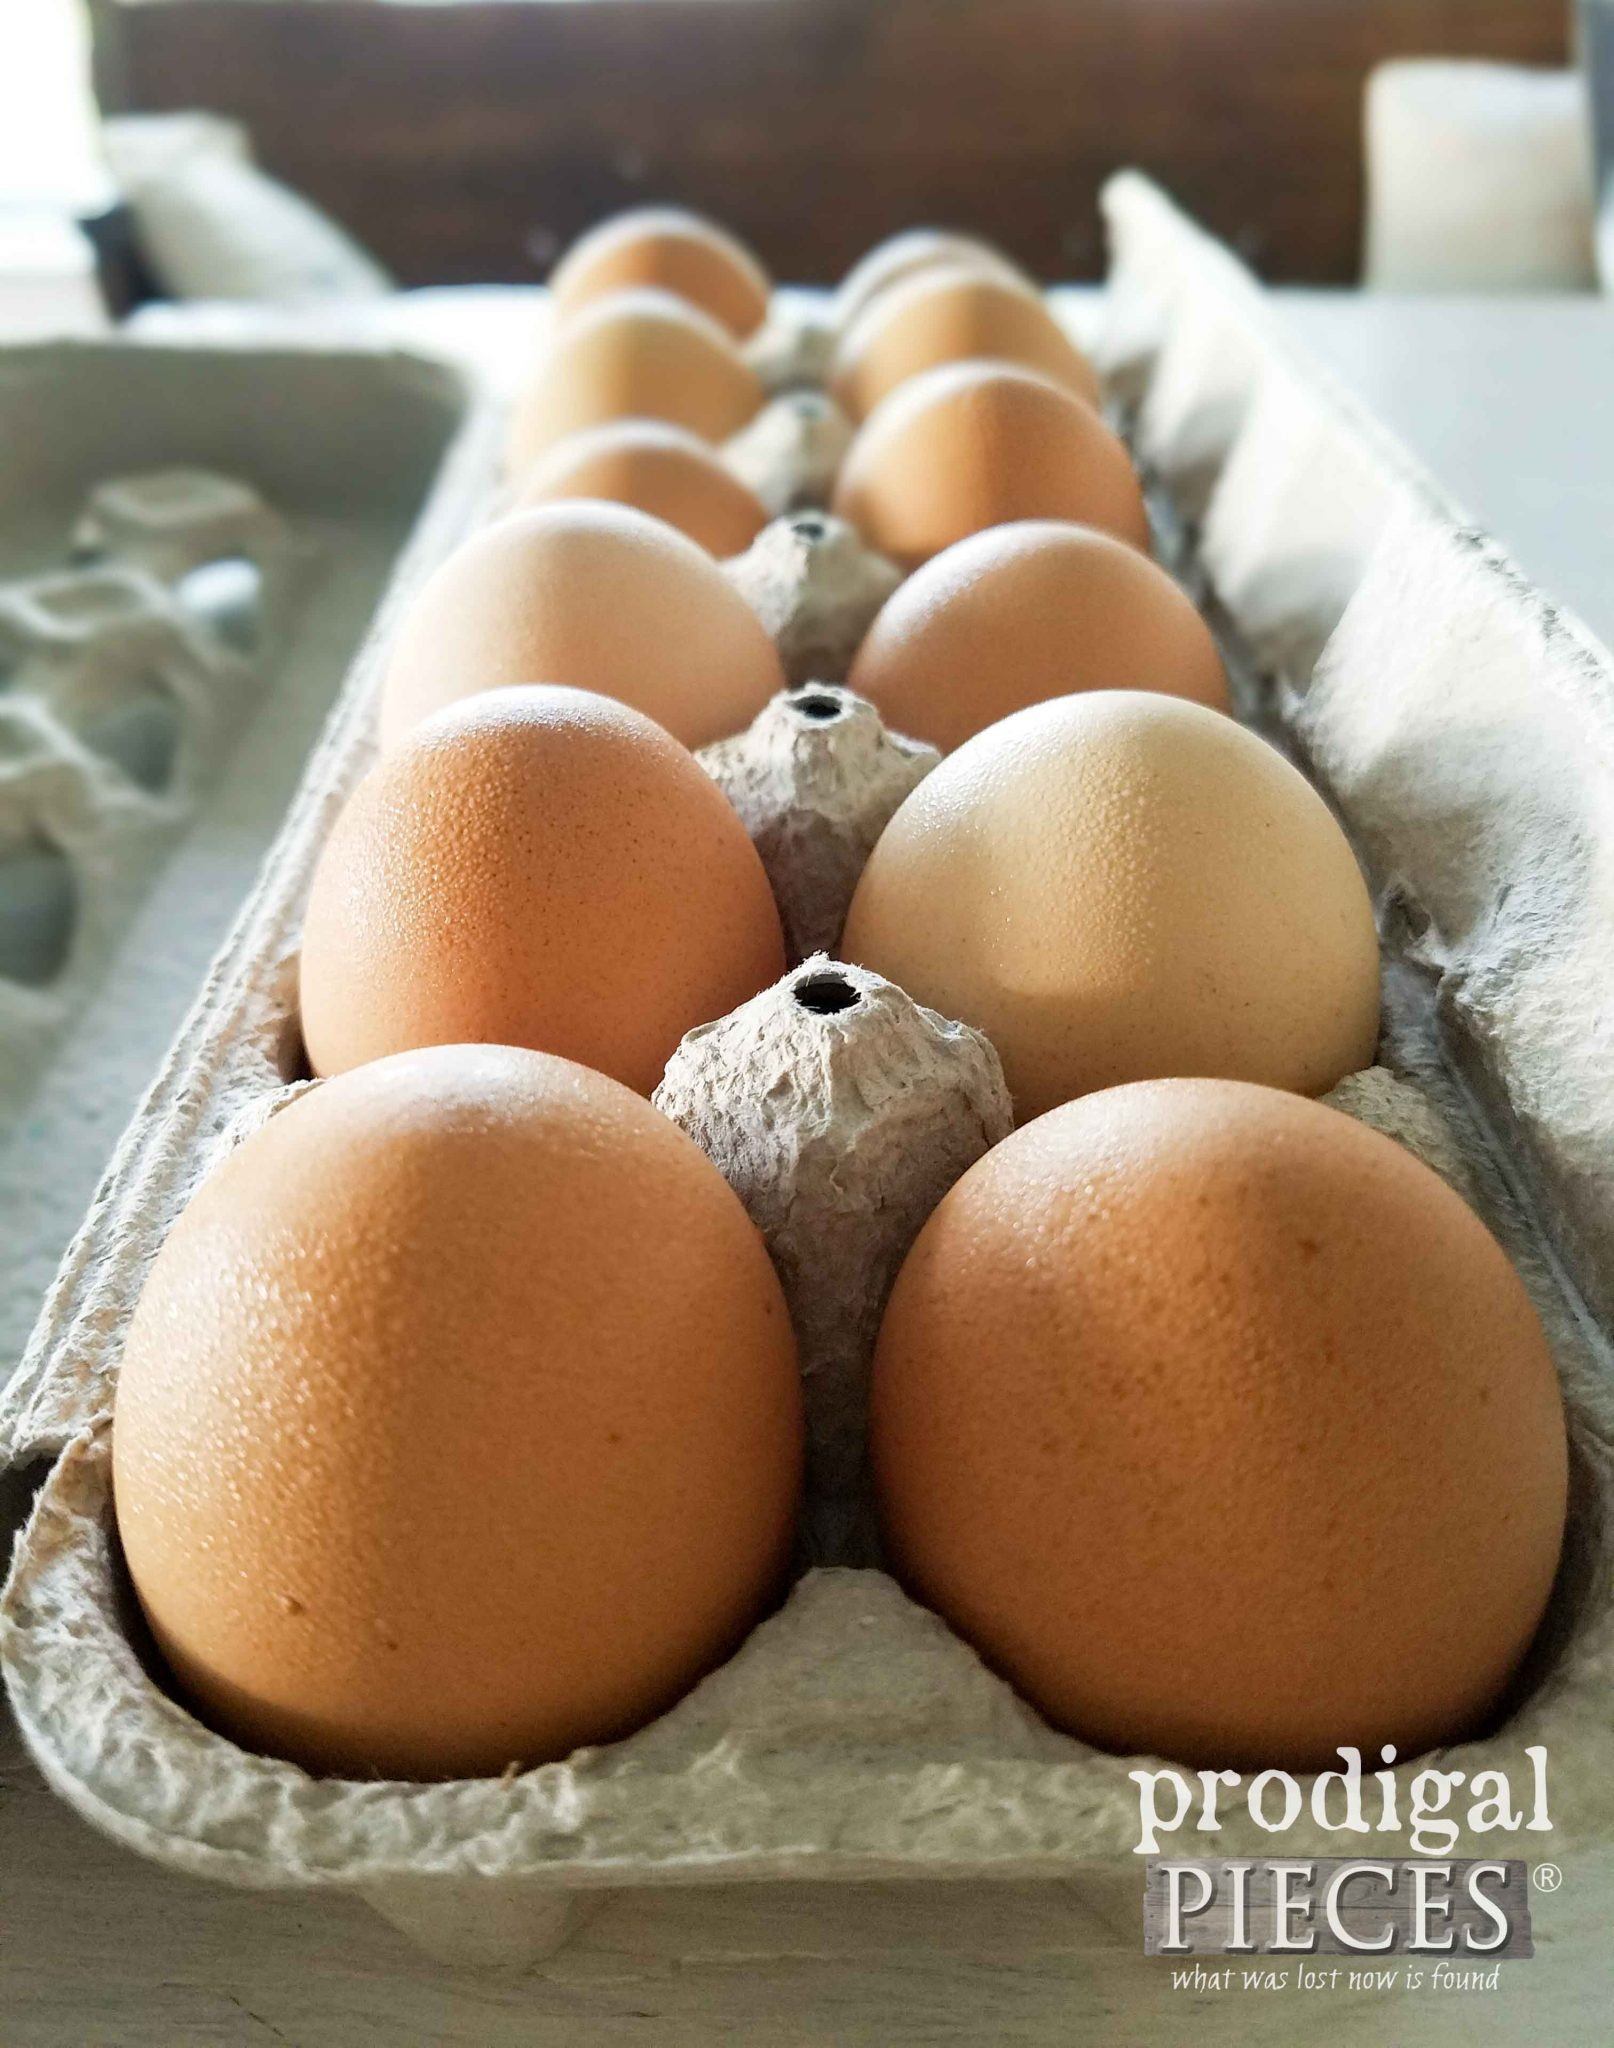 Farm Fresh Eggs by Prodigal Pieces | prodigalpieces.com